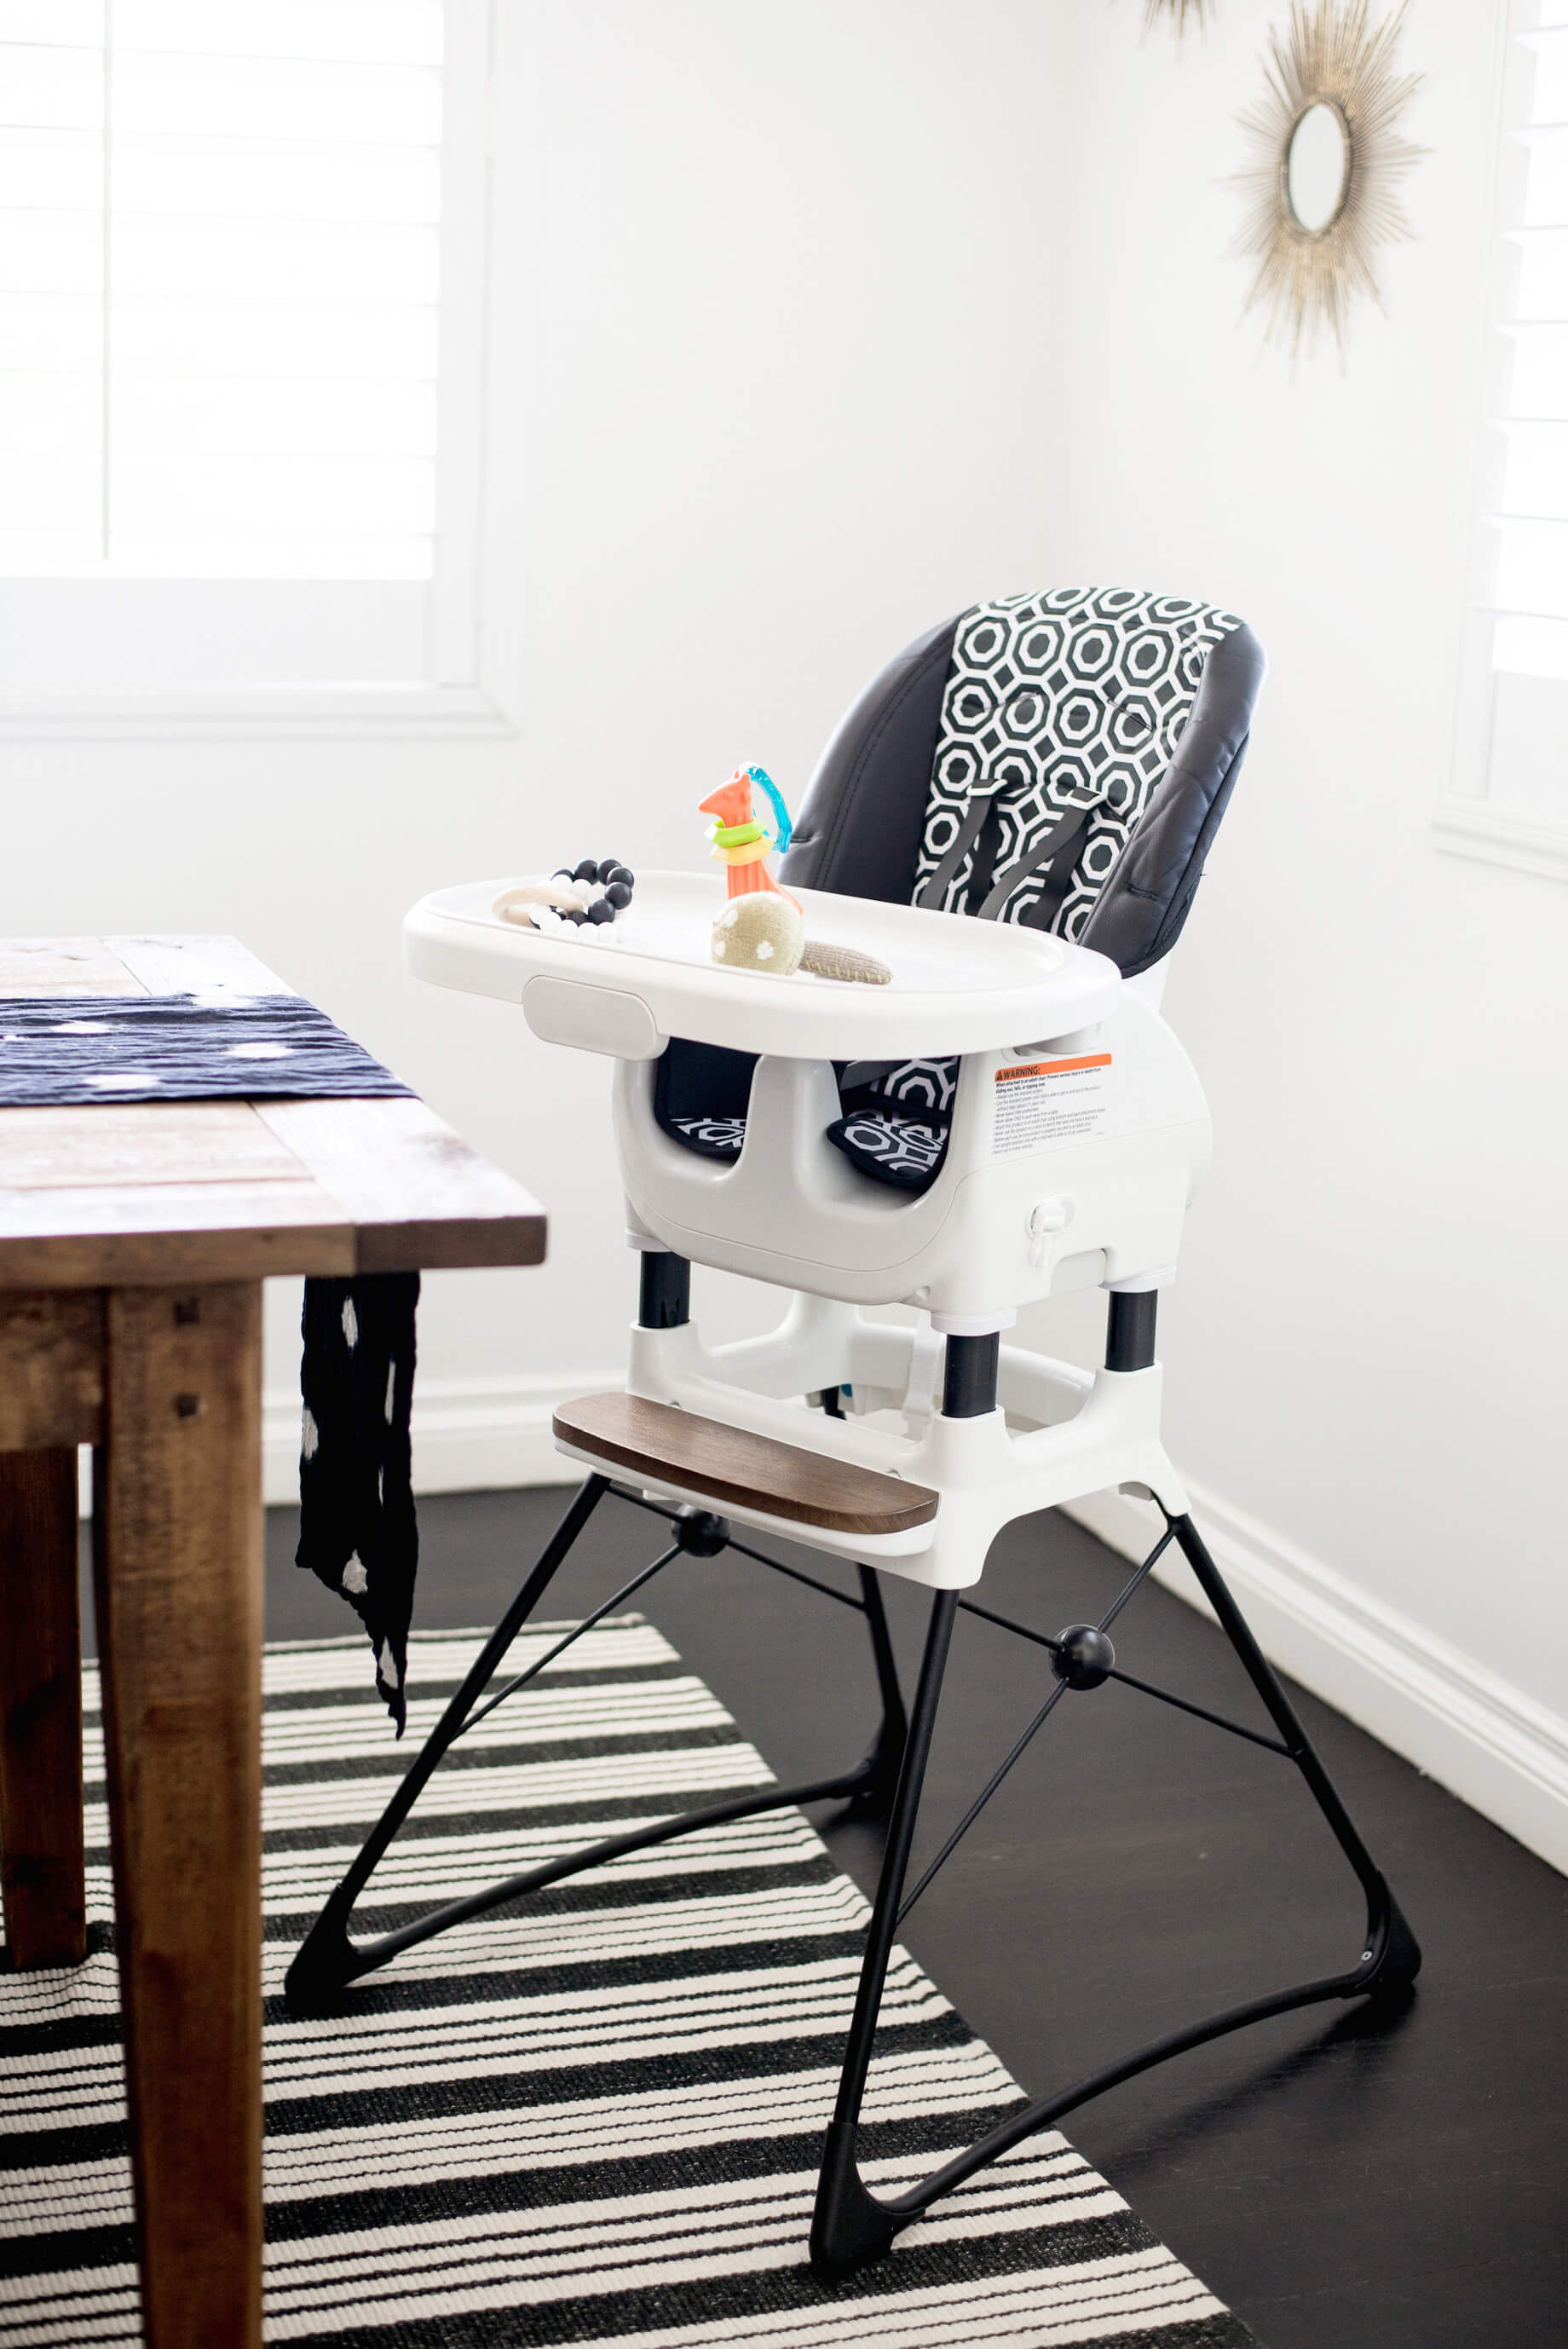 Wondrous Making Room For Baby M Loves M Caraccident5 Cool Chair Designs And Ideas Caraccident5Info